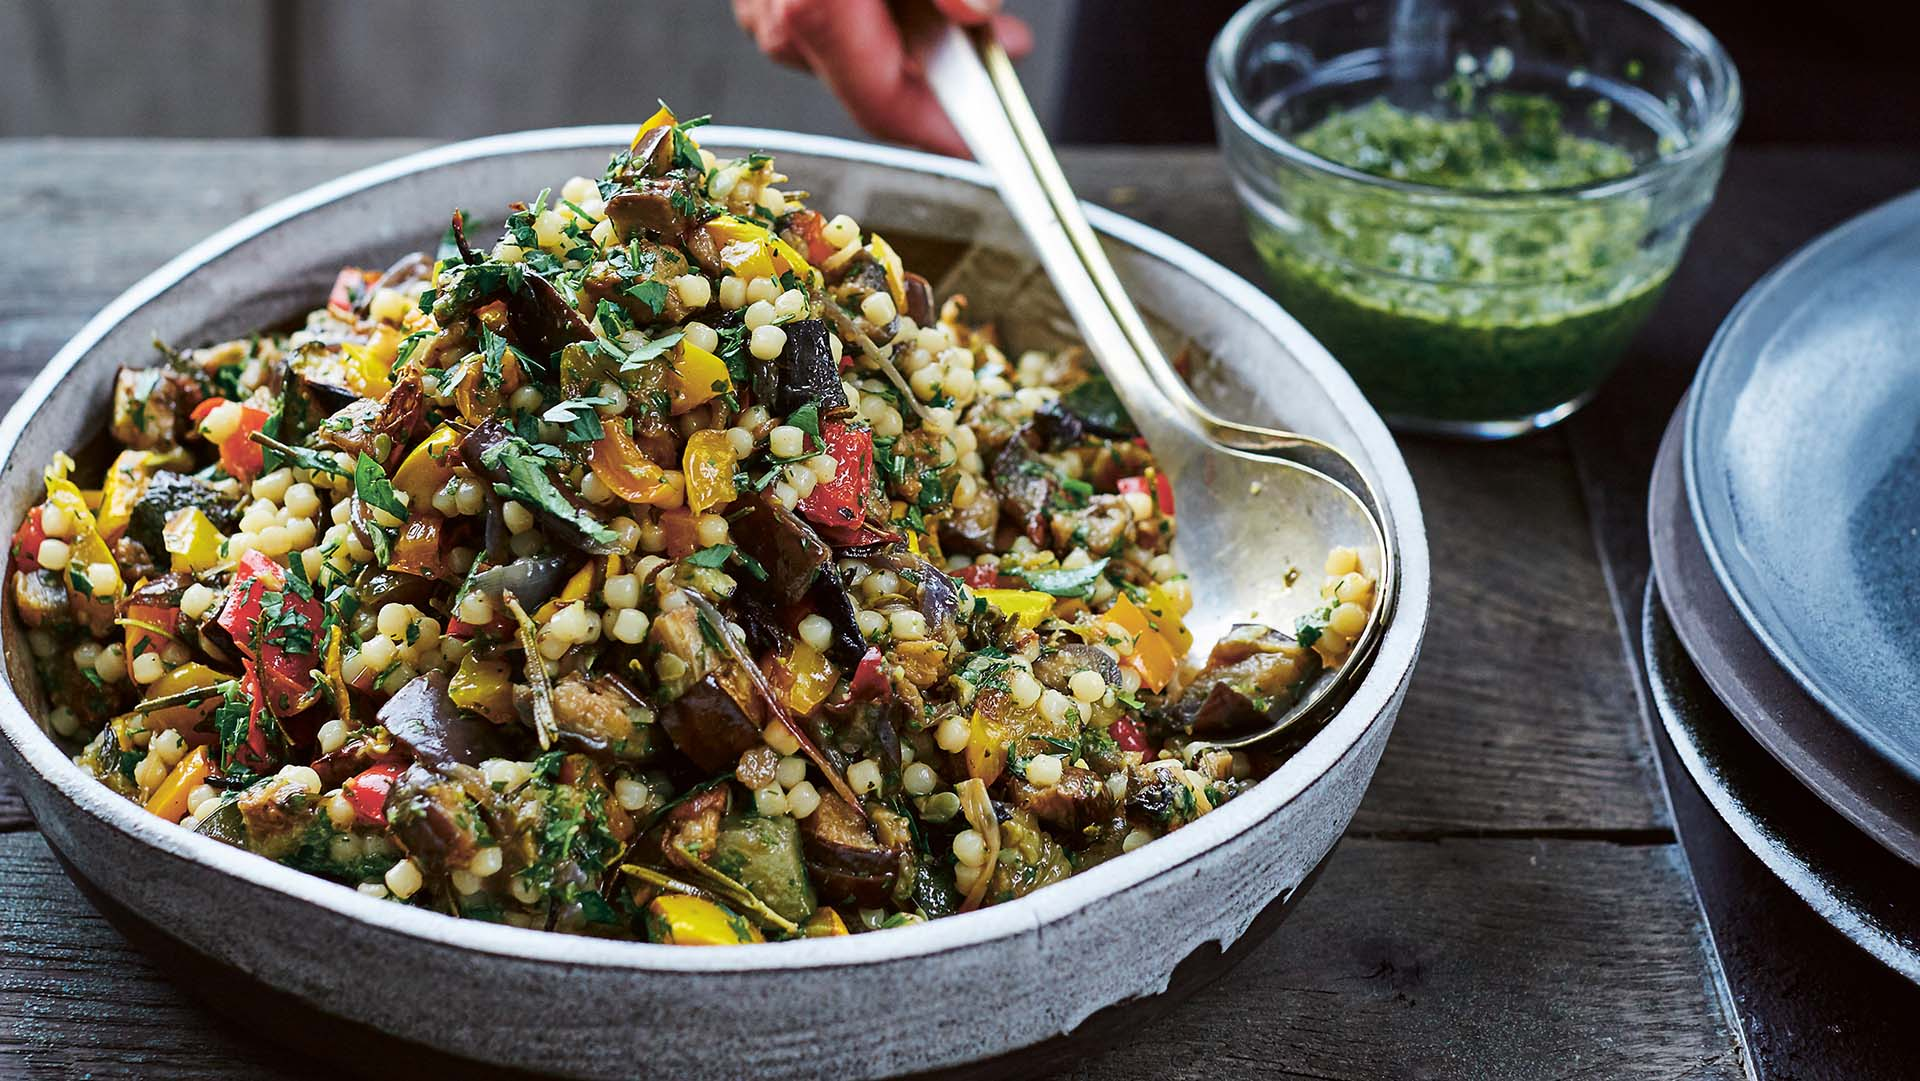 Roasted vegetables with giant couscous